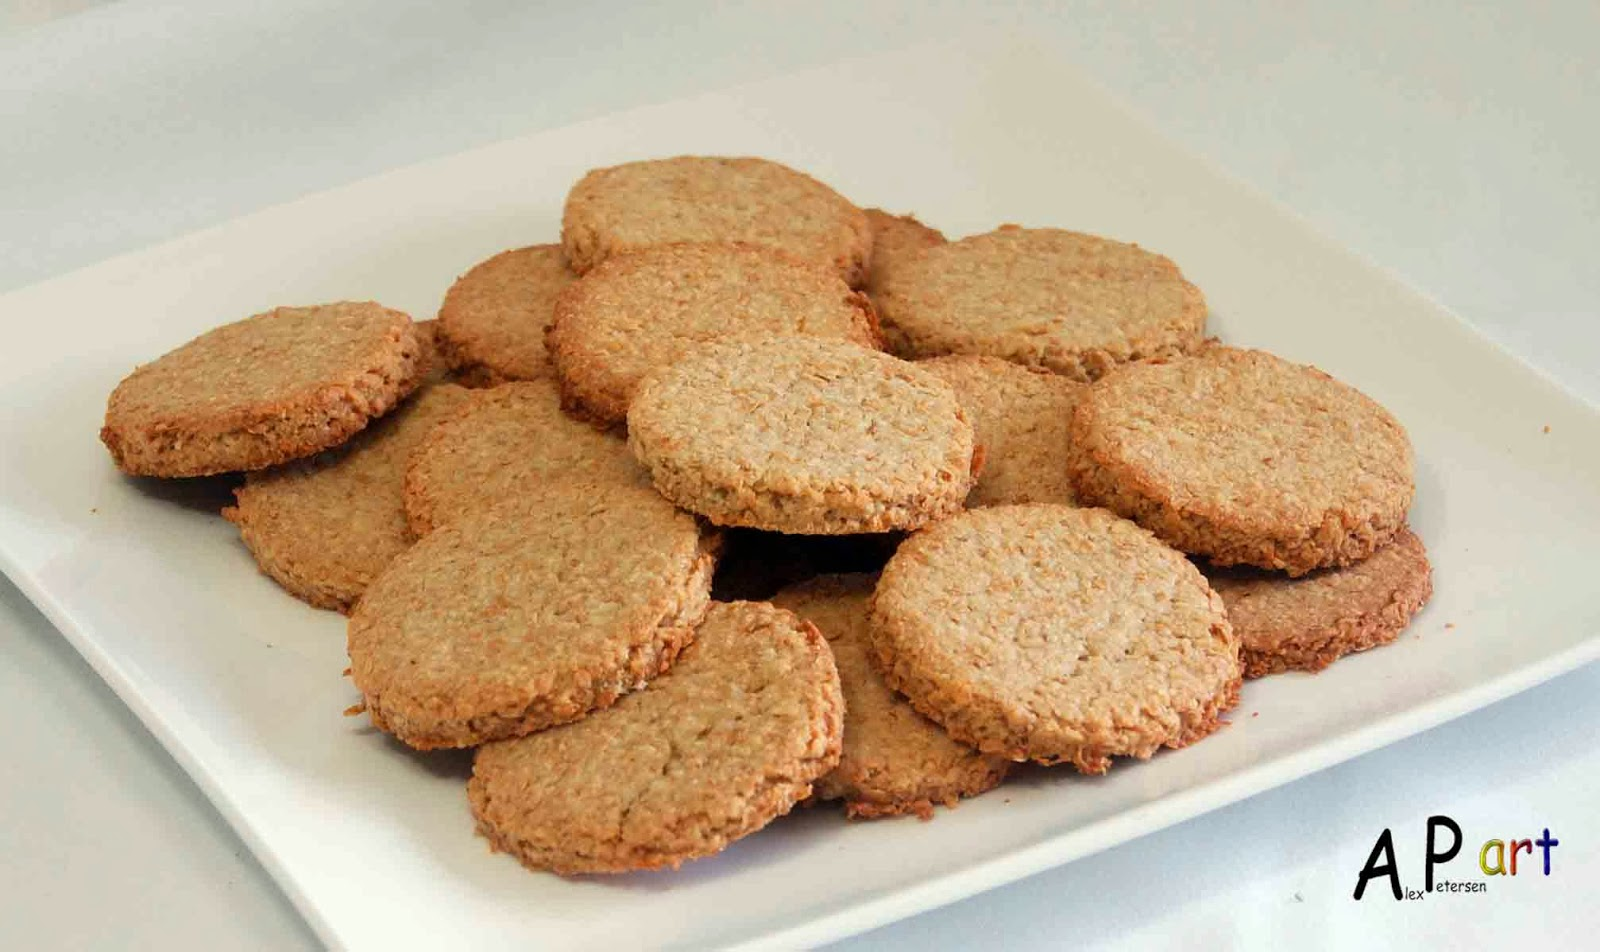 Alex the Contemporary Culinarian: Oat and Wheat Bran Biscuits